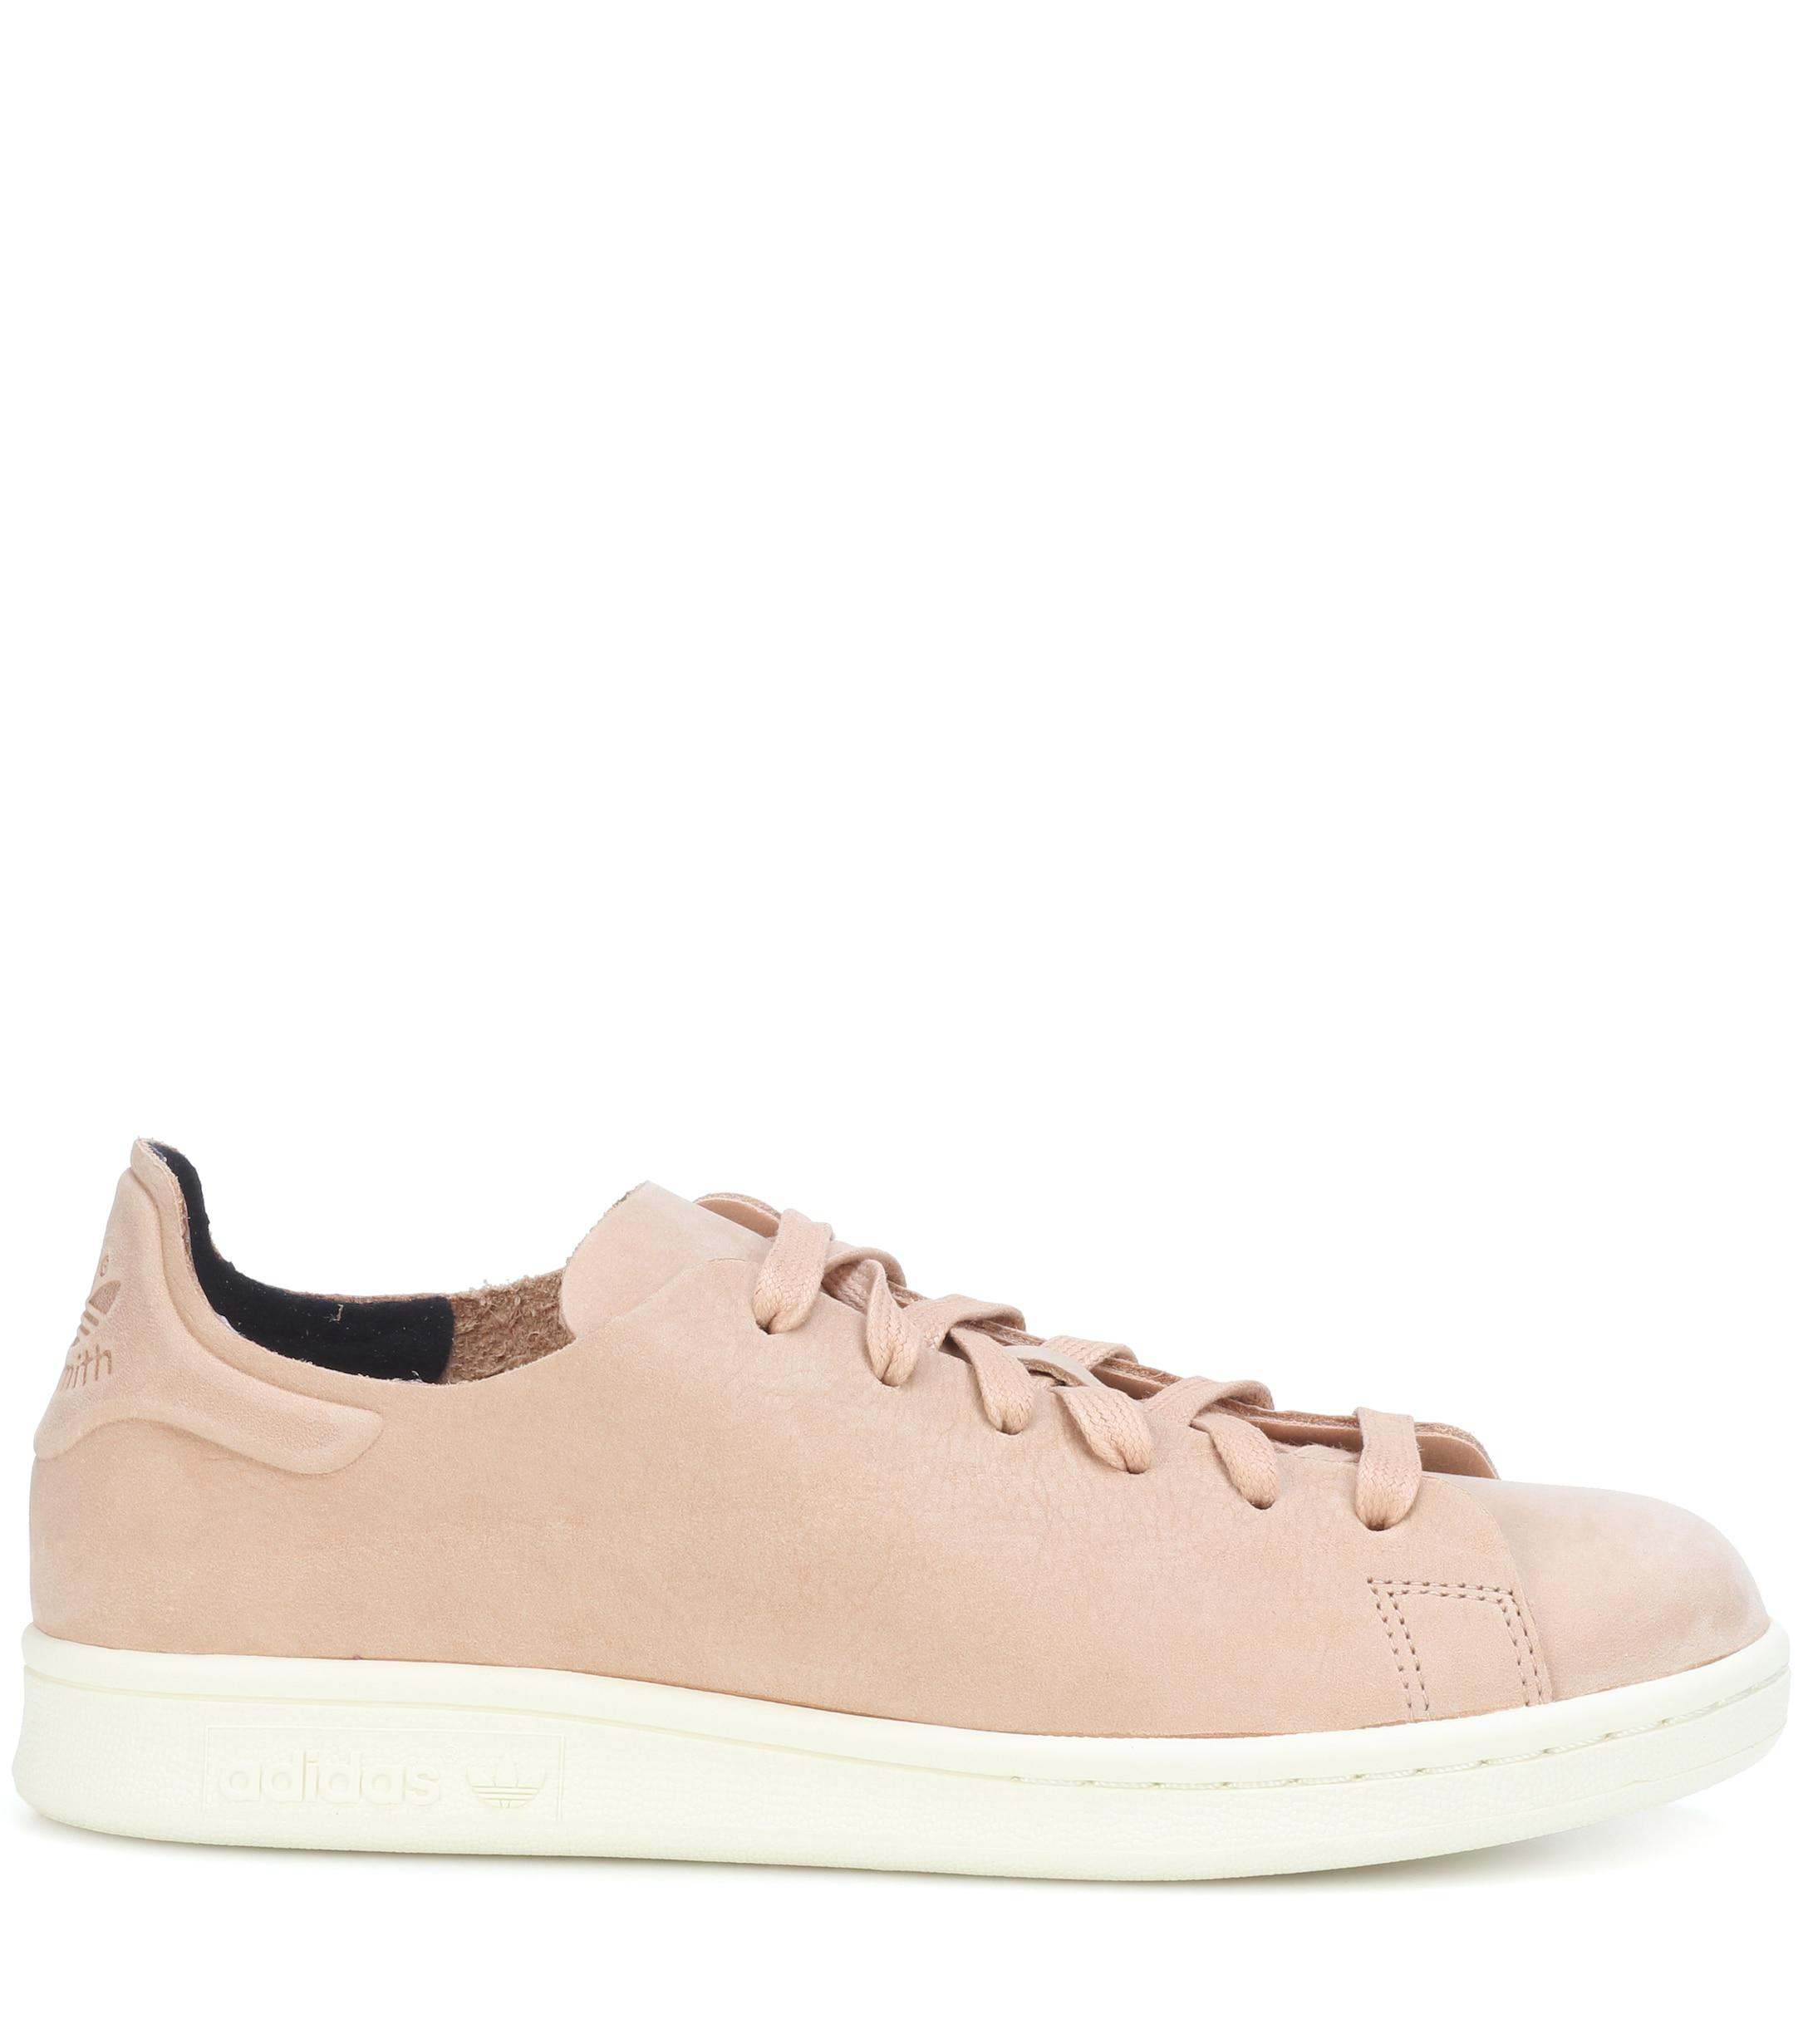 chaussures de sport 4384b 0418f Women's Natural Stan Smith Nubuck Leather Sneakers